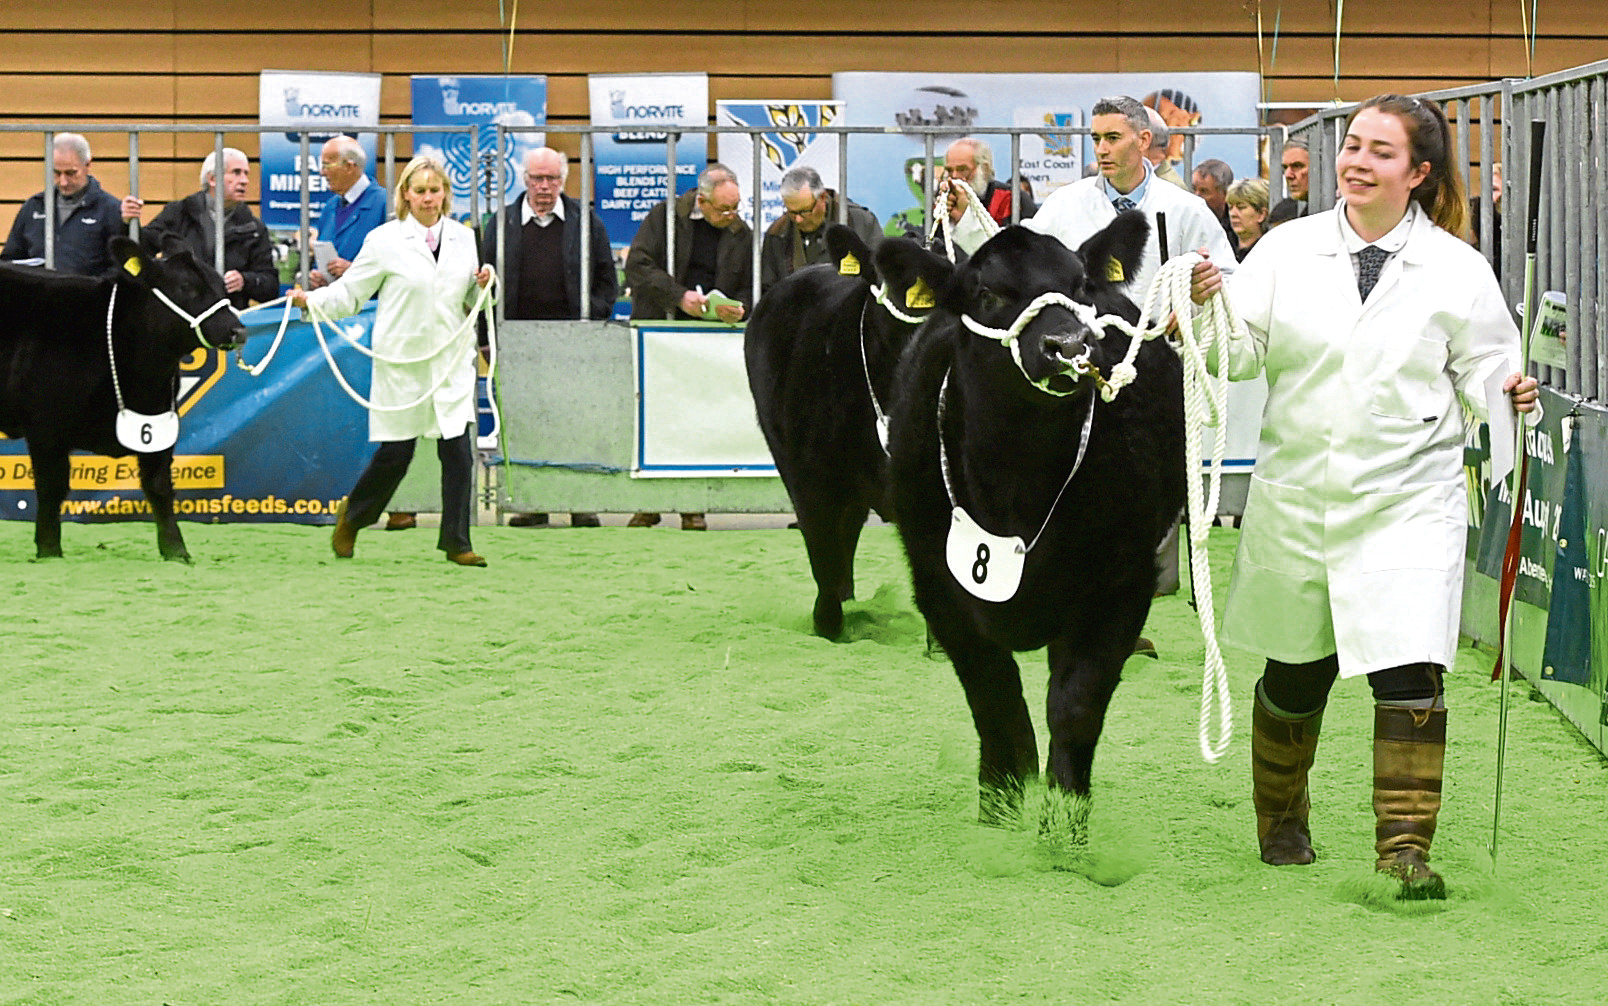 Entries are sought for this year's show.